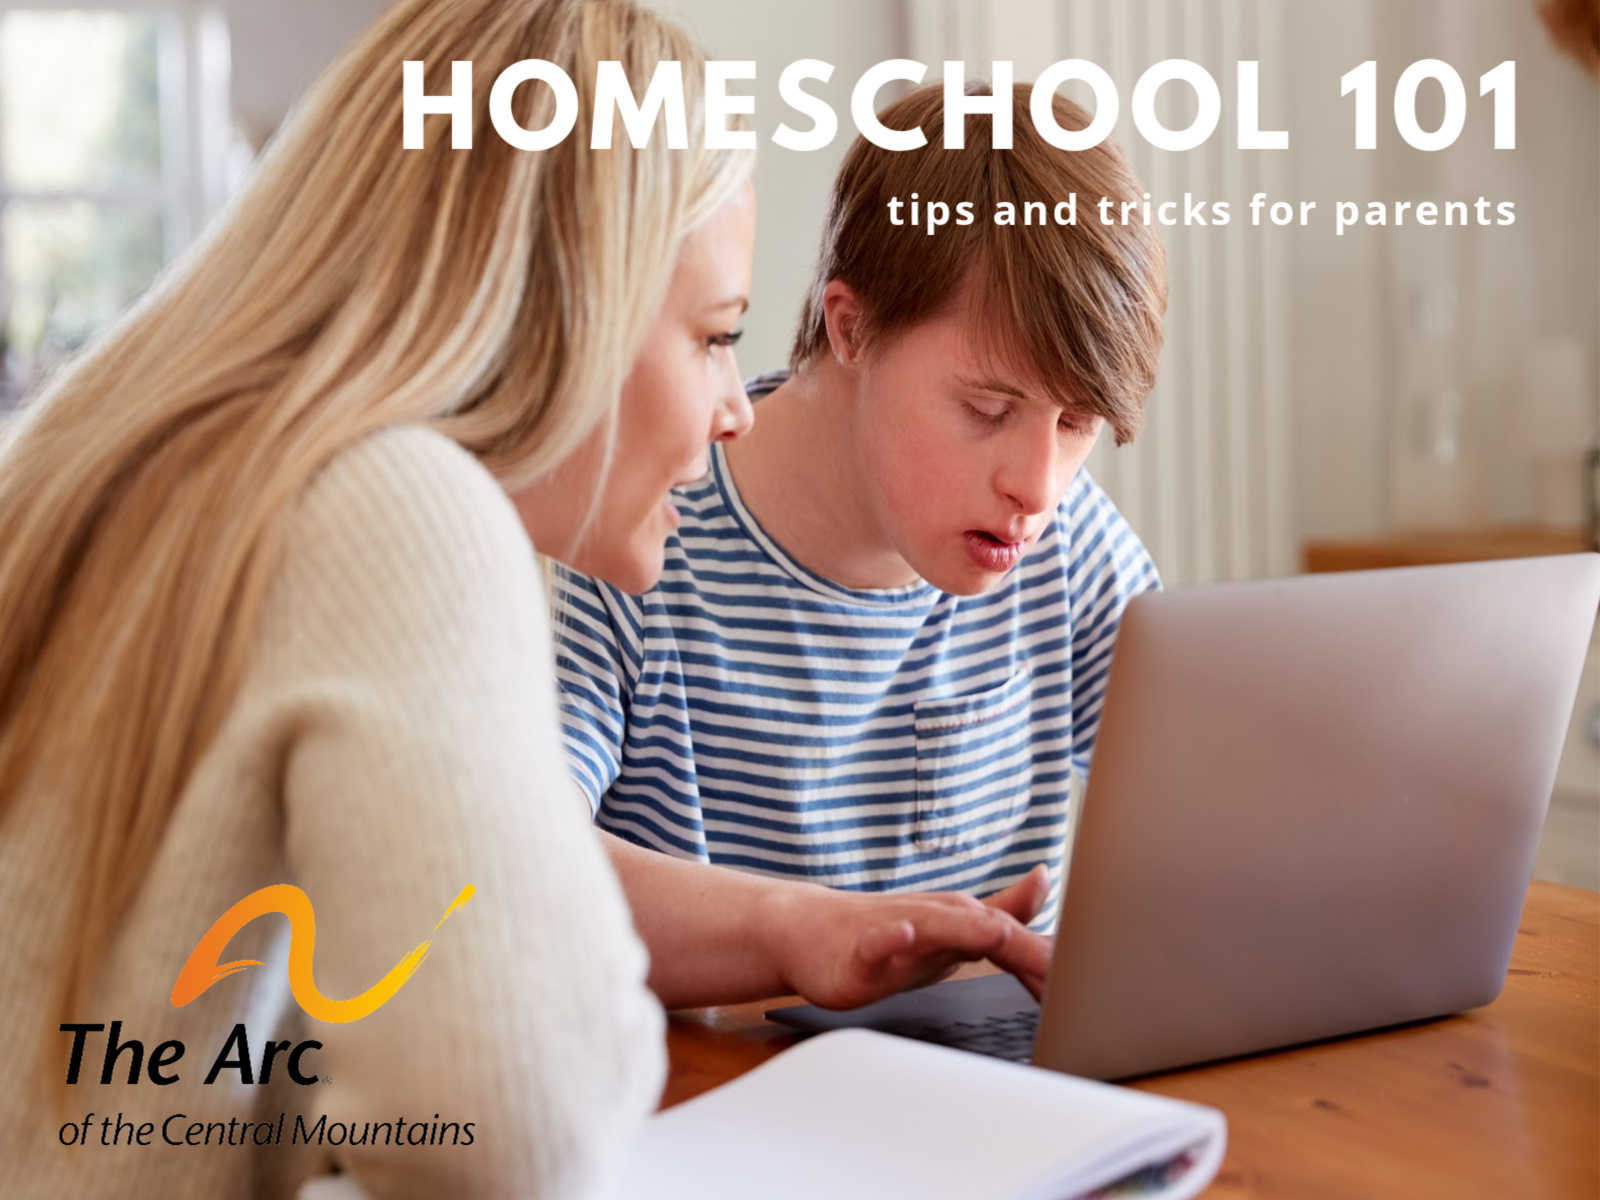 Homeschool 101 modules